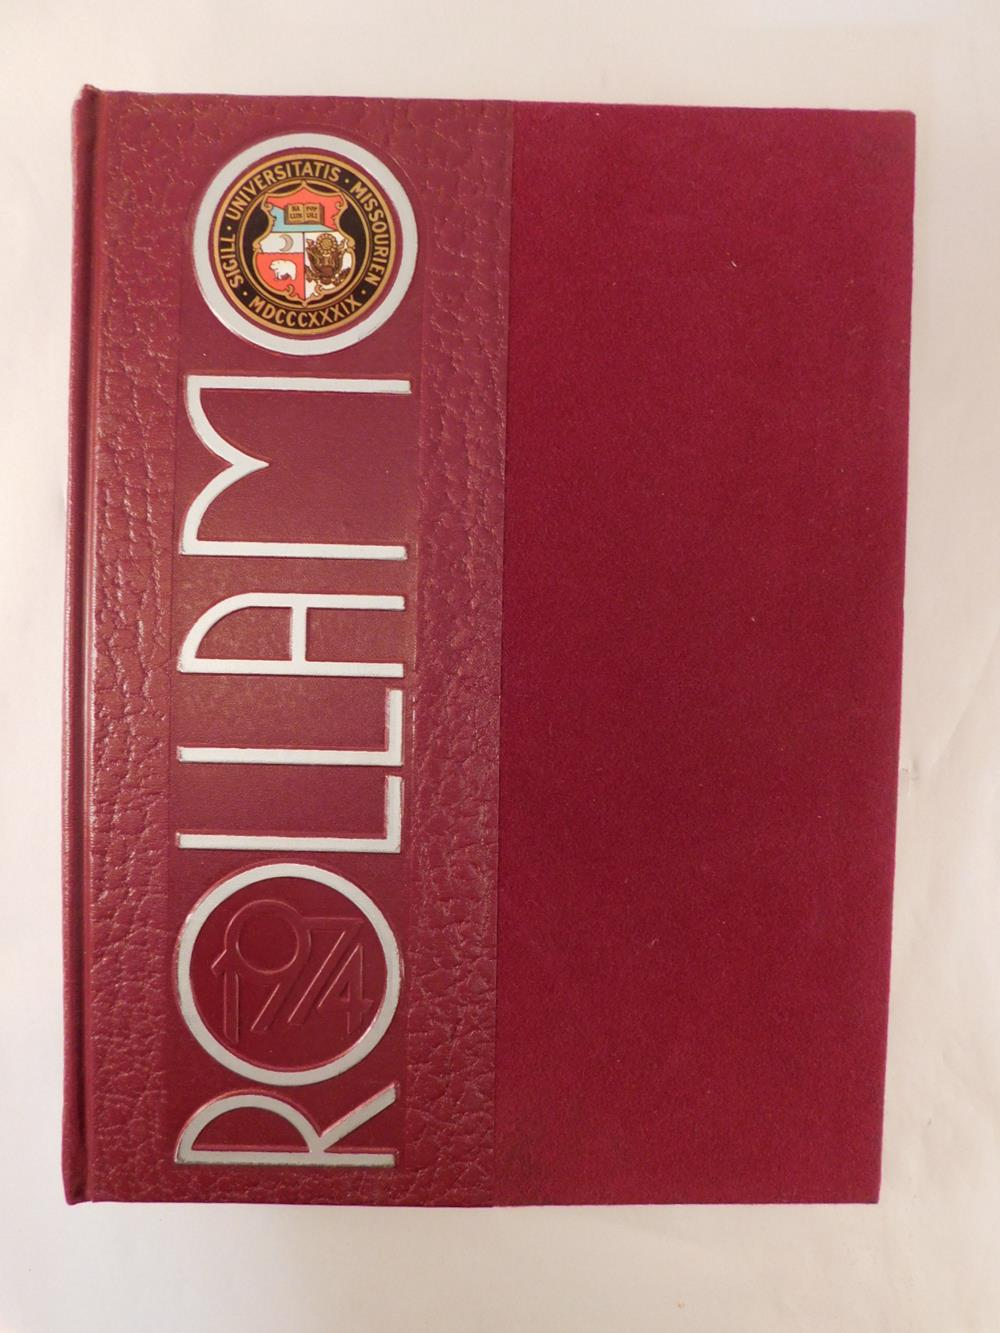 ROLLA MO 1974 UNIVERSITY OF MO ROLLA COLLEGE YEARBOOK ANNUAL BOOK